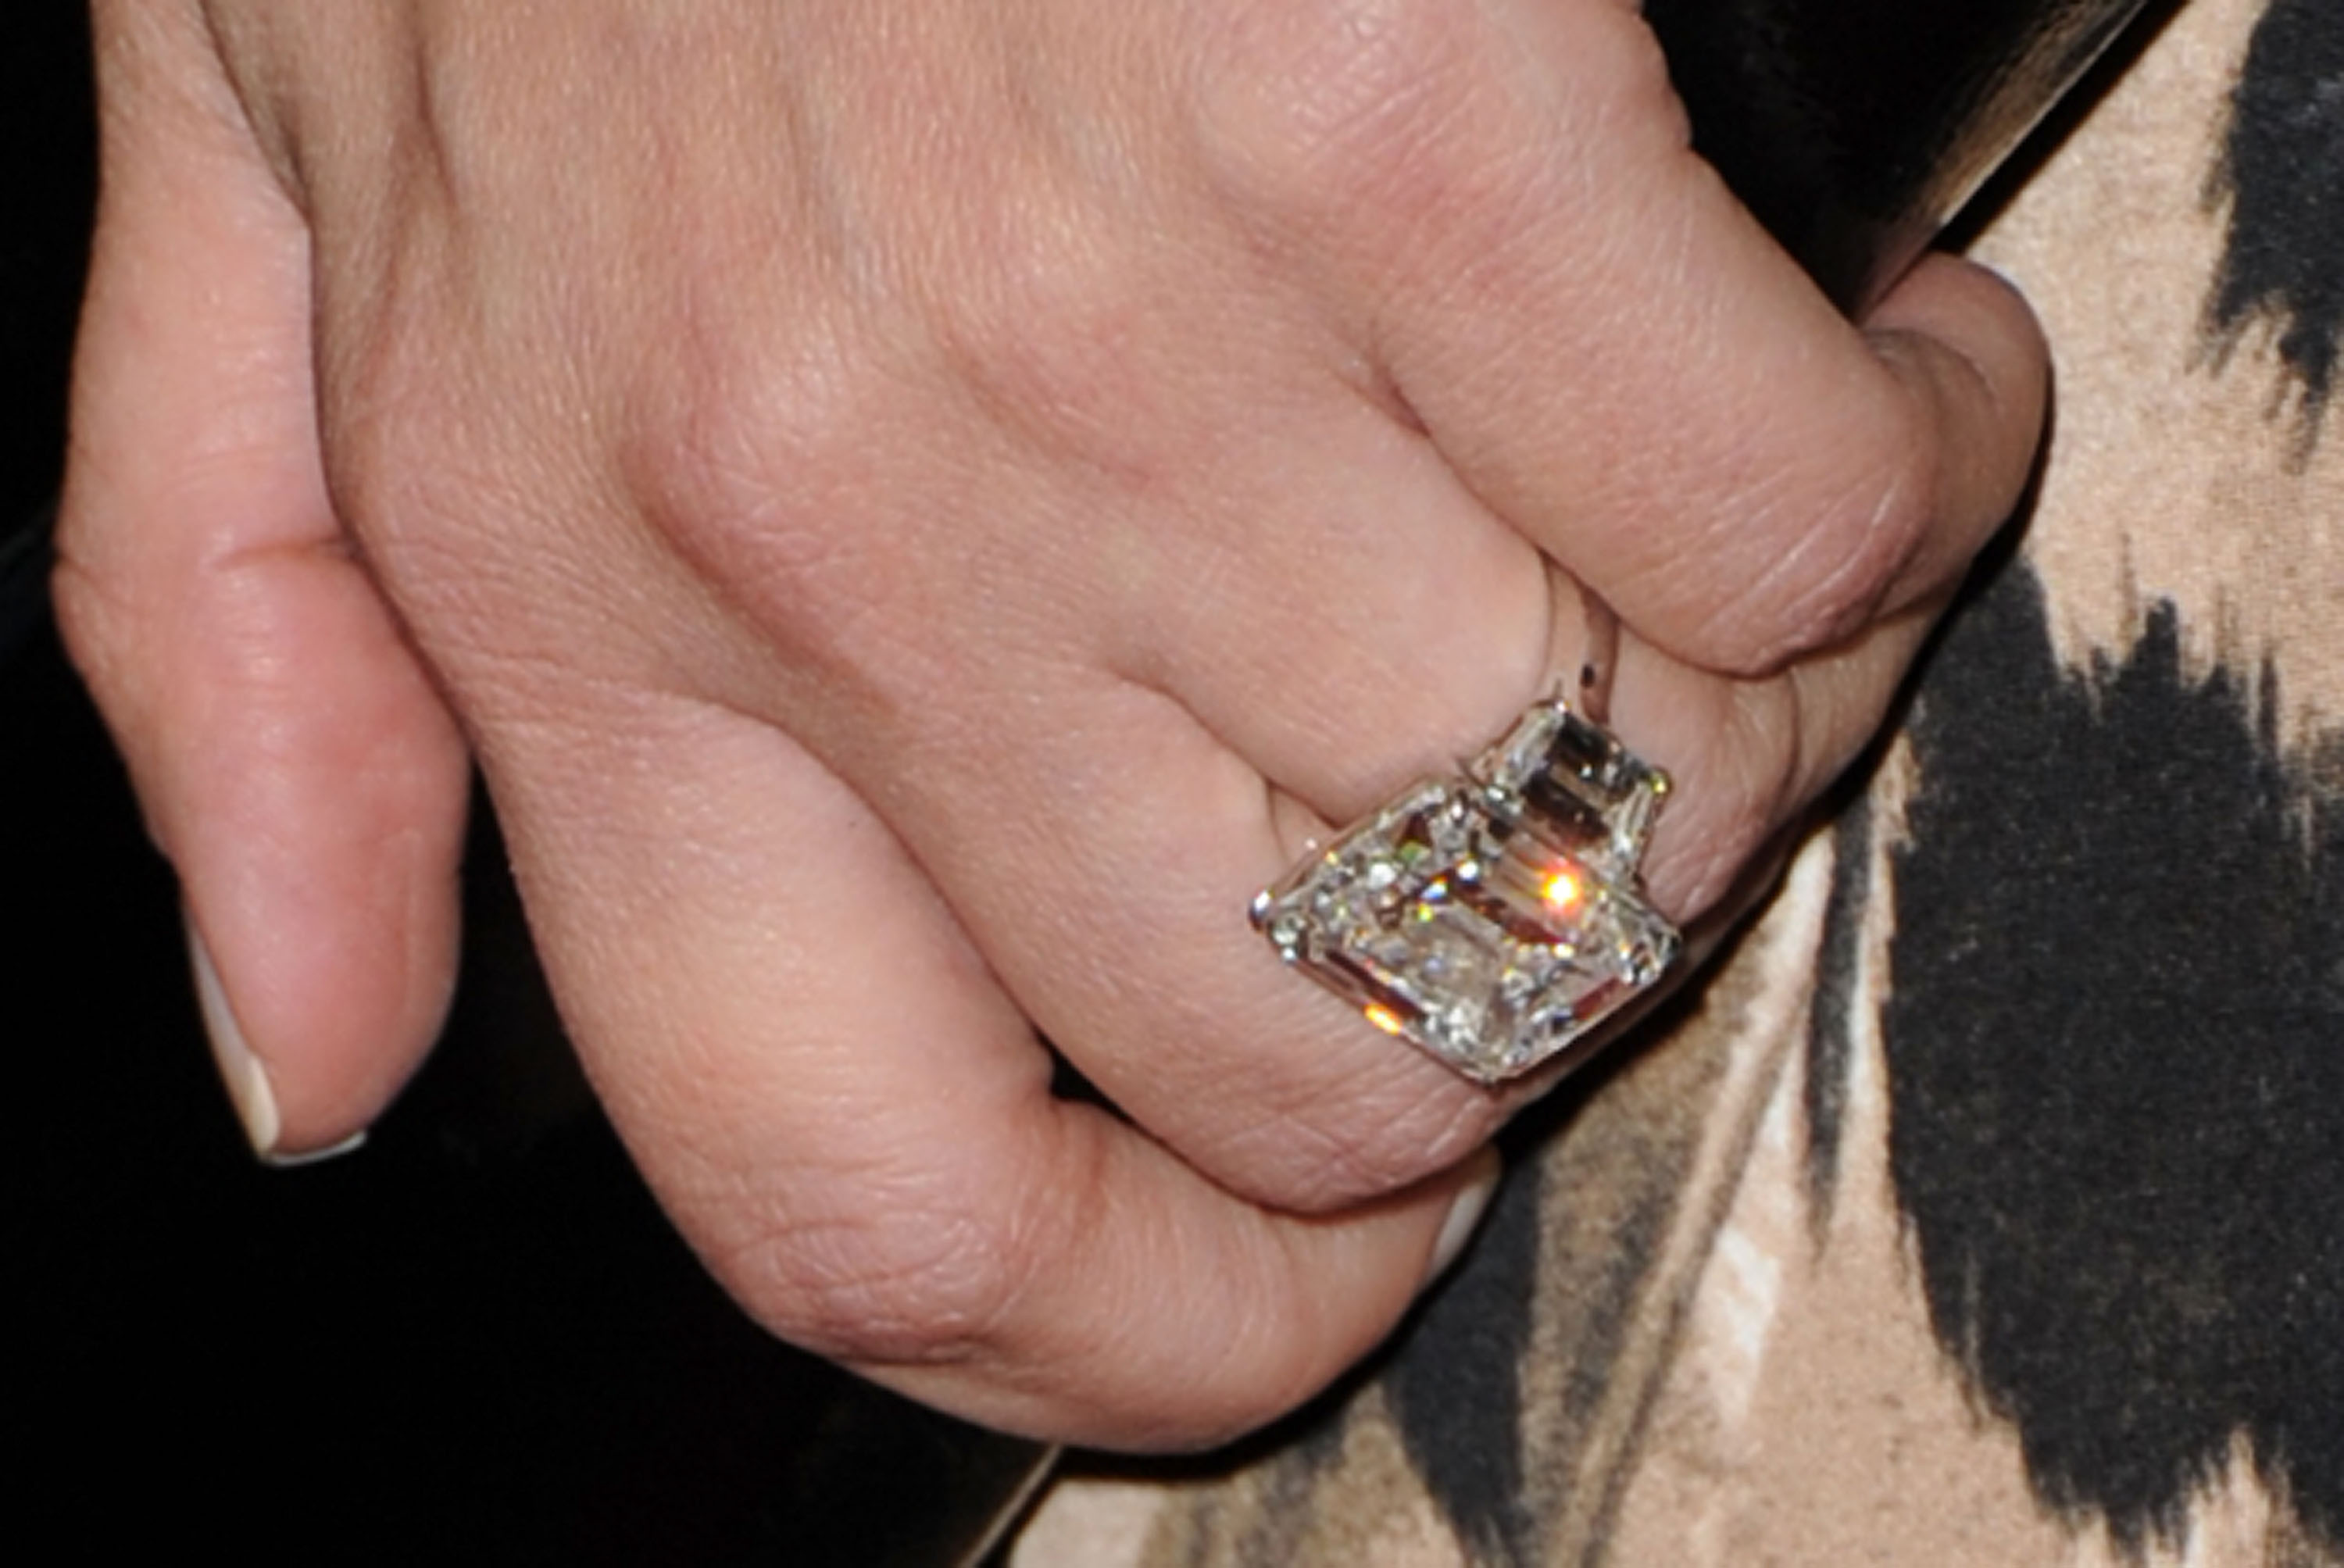 Avril Lavigne Engagement Ring Deryck Whibley